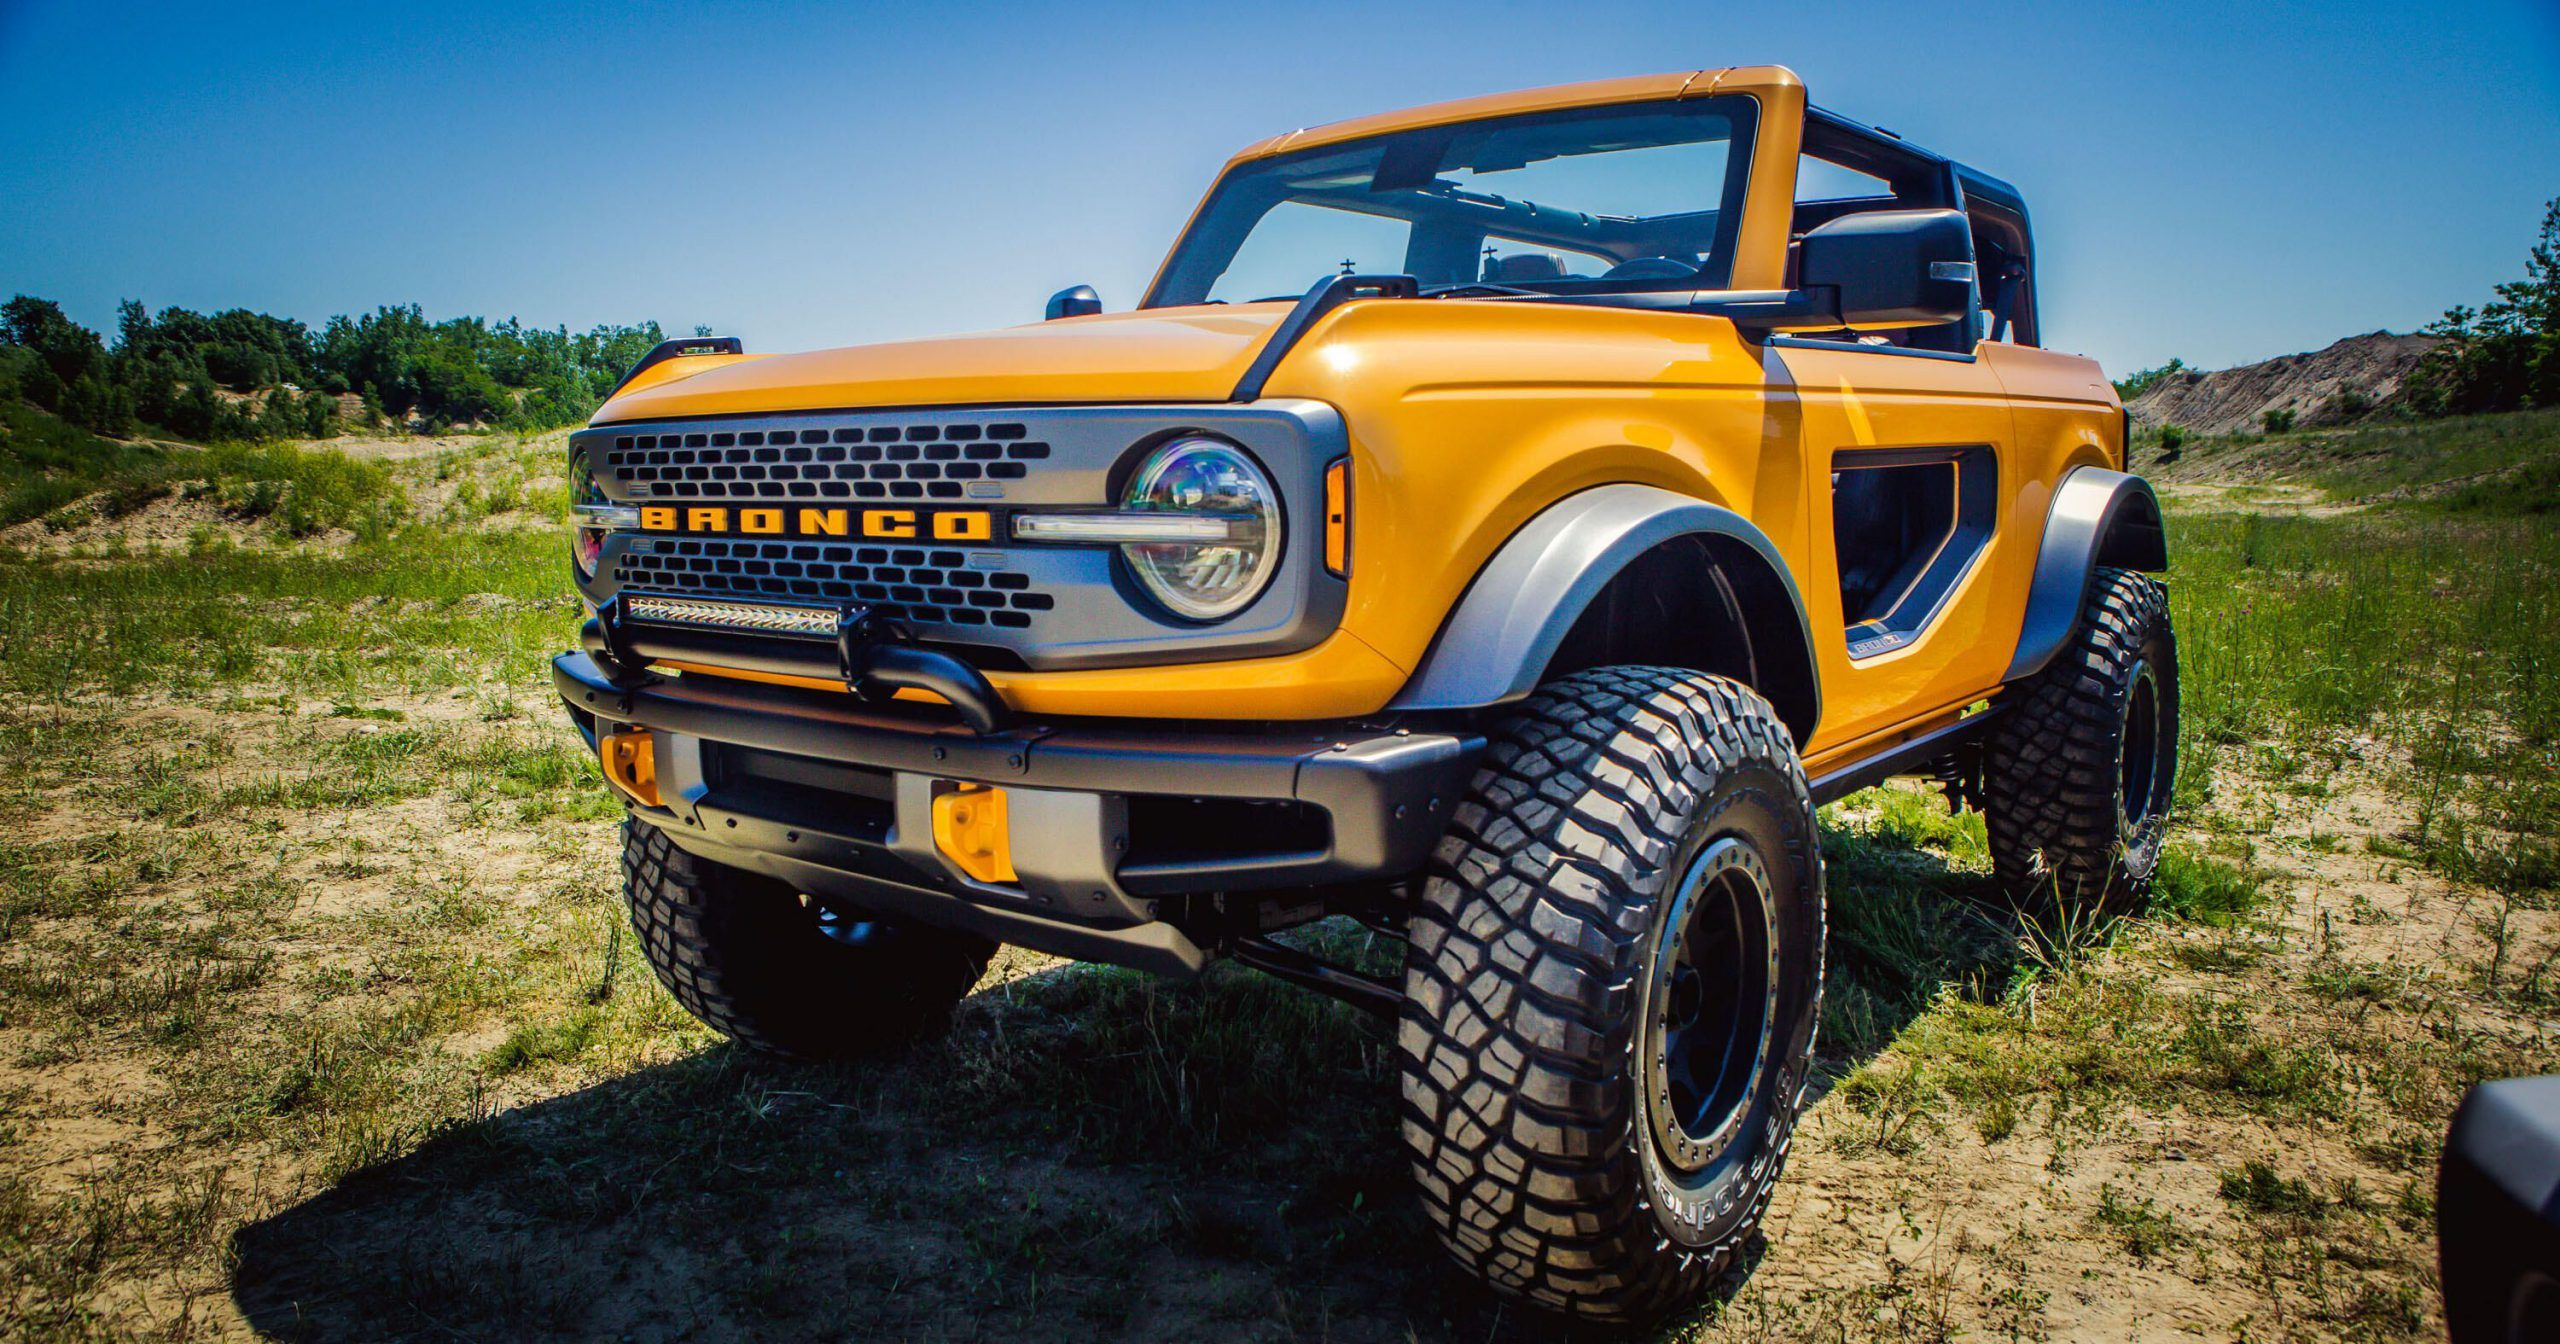 News World News Bbc News Cnn News Sport News Business News Insider 2021 Ford Bronco Pric In 2020 Ford Bronco Bronco New Bronco